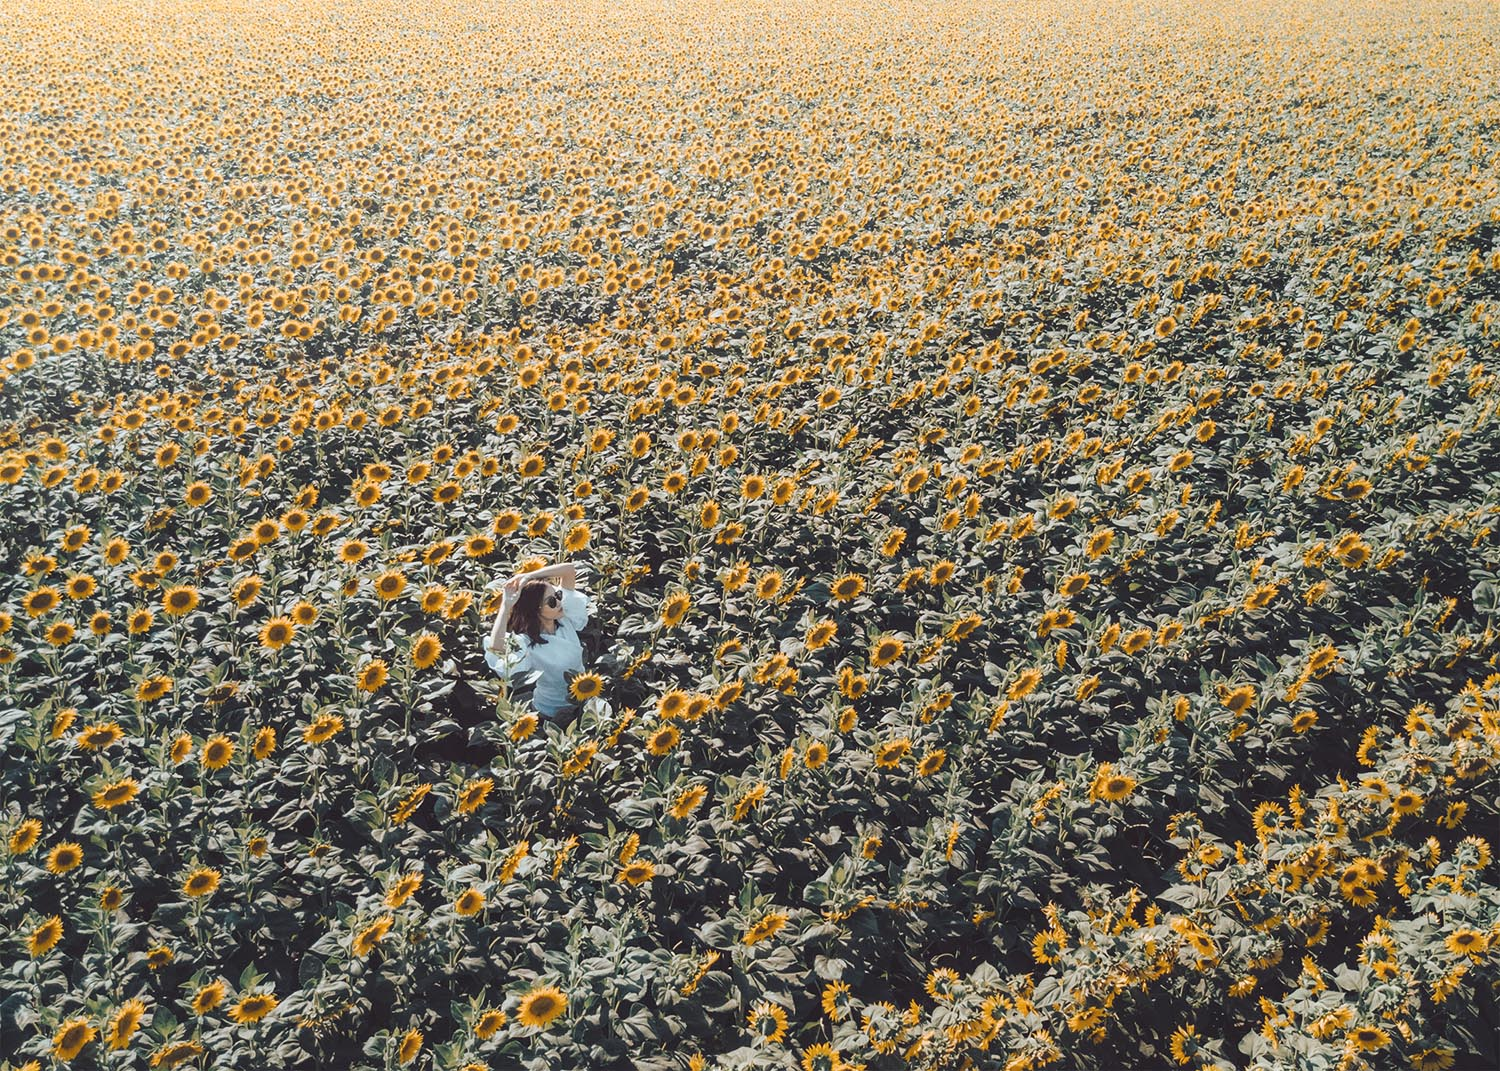 Fashion photography Drone shot sunflower field Street style fashion blogger influencer Jenny Tsang of Tsangtastic wearing white gathered ruffle puffed sleeve top denim shorts o-ring small leather bag simon miller bag in sunflower field in Davis California